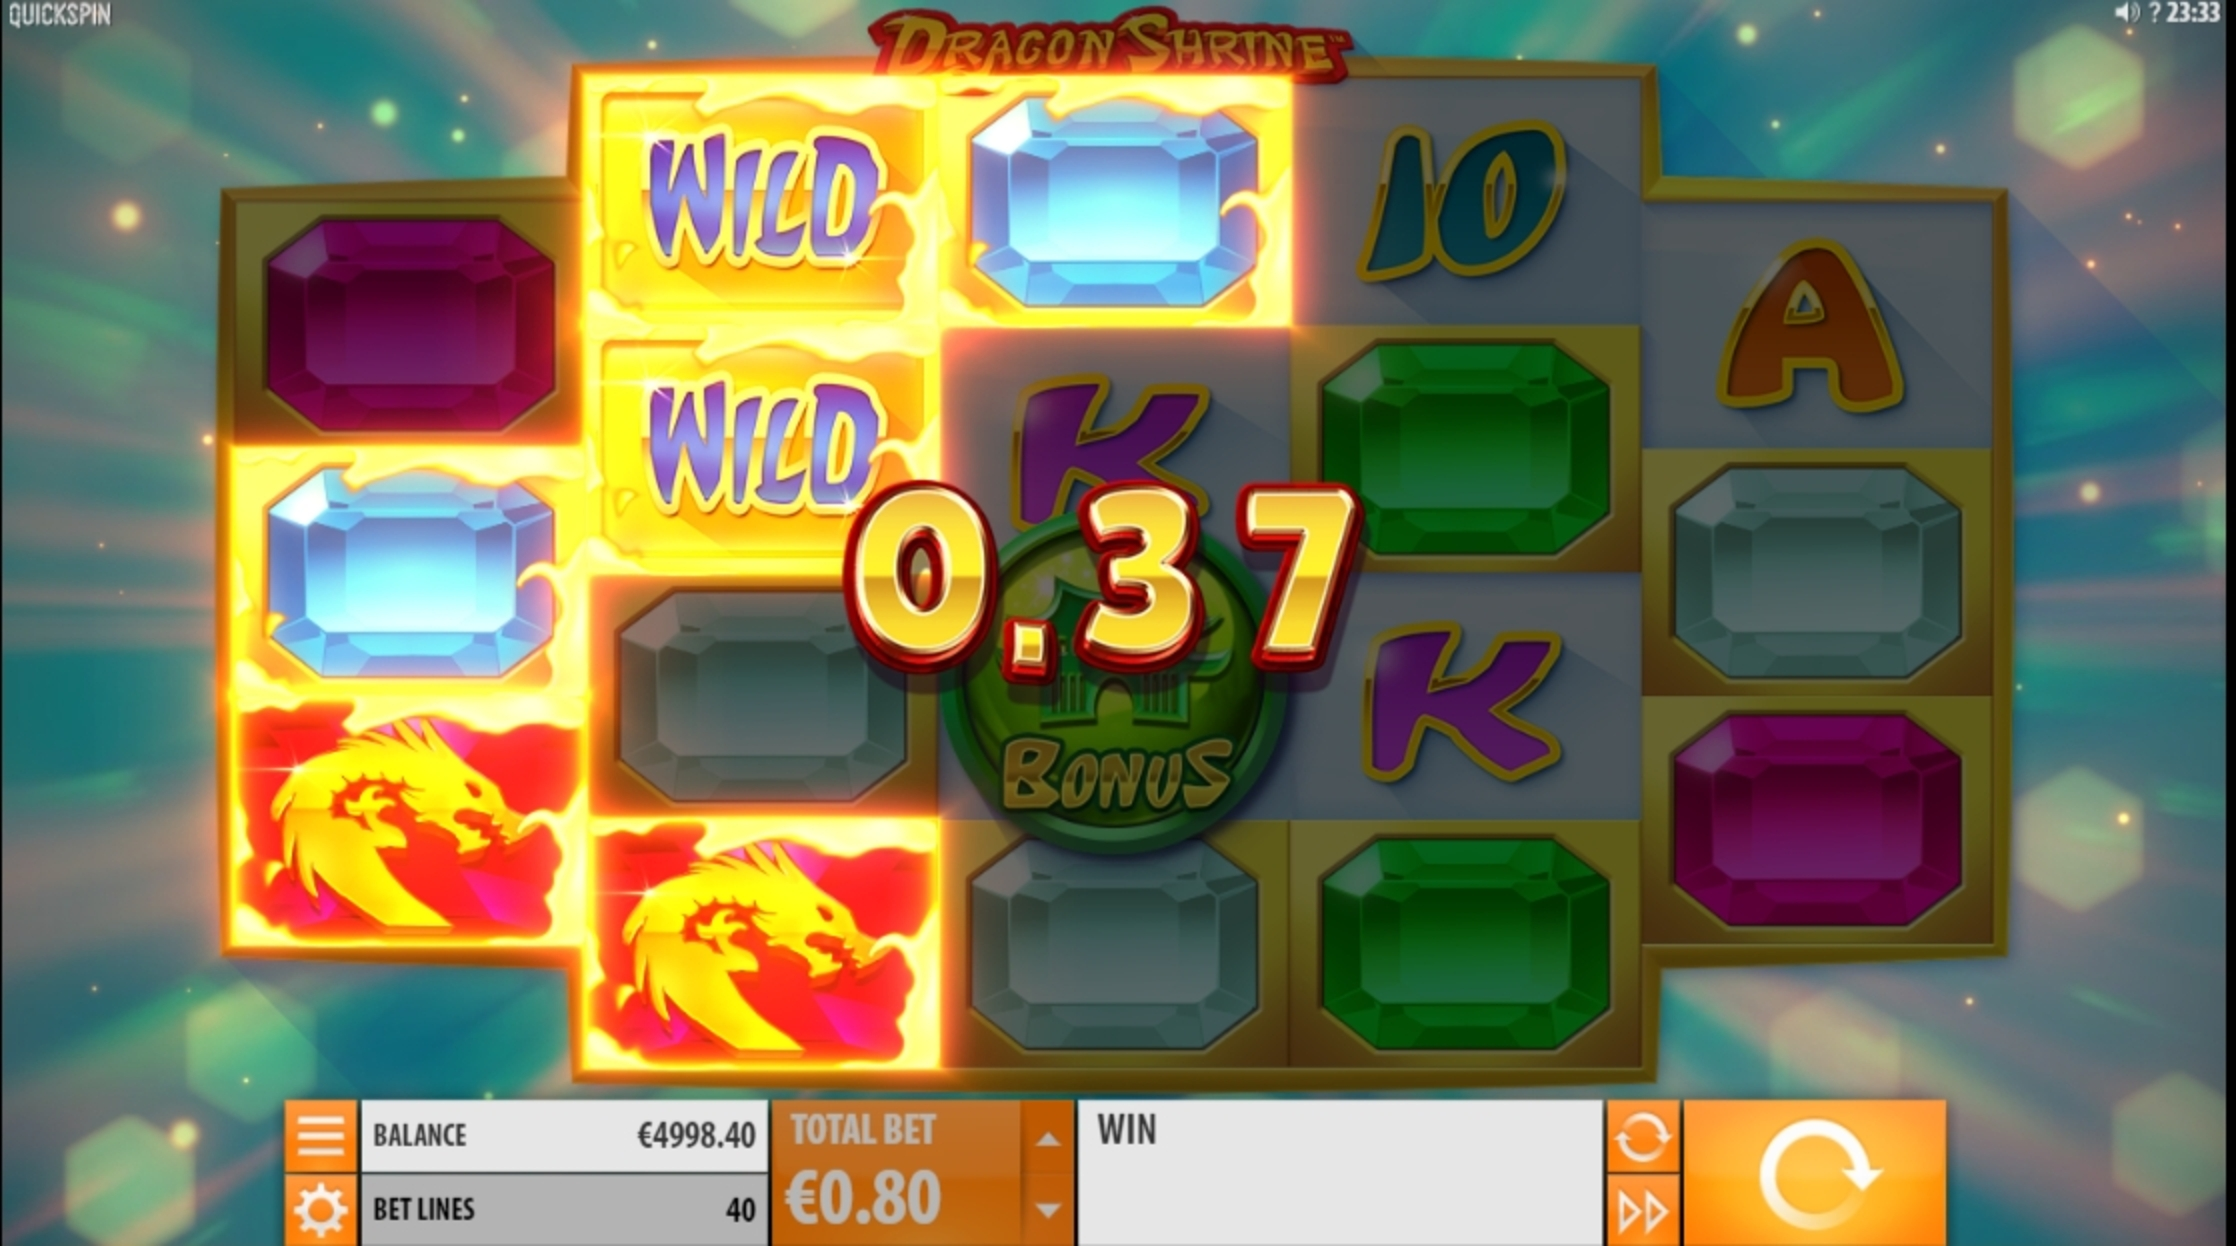 Win Money in Dragon Shrine Free Slot Game by Quickspin